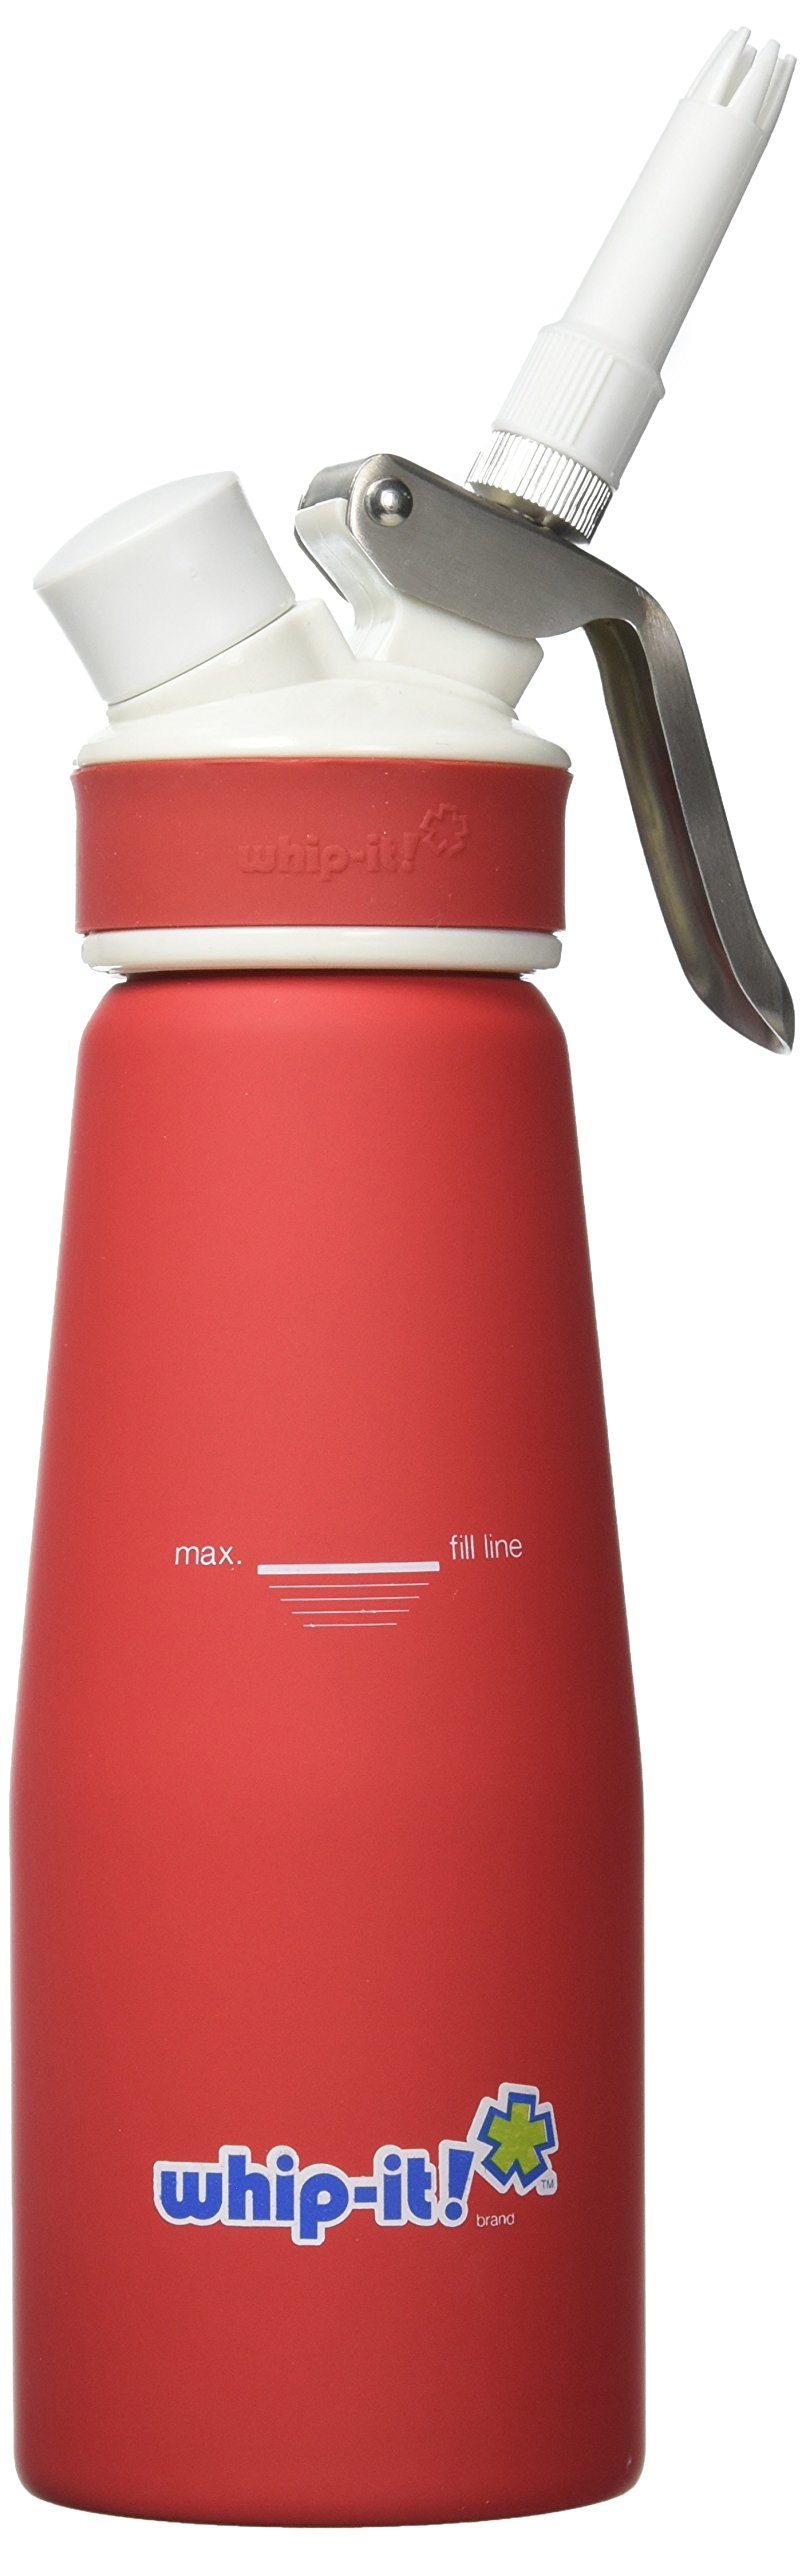 Whip-it! Pro Whipped Cream Dispenser 1/2L Rubber Coated, Red